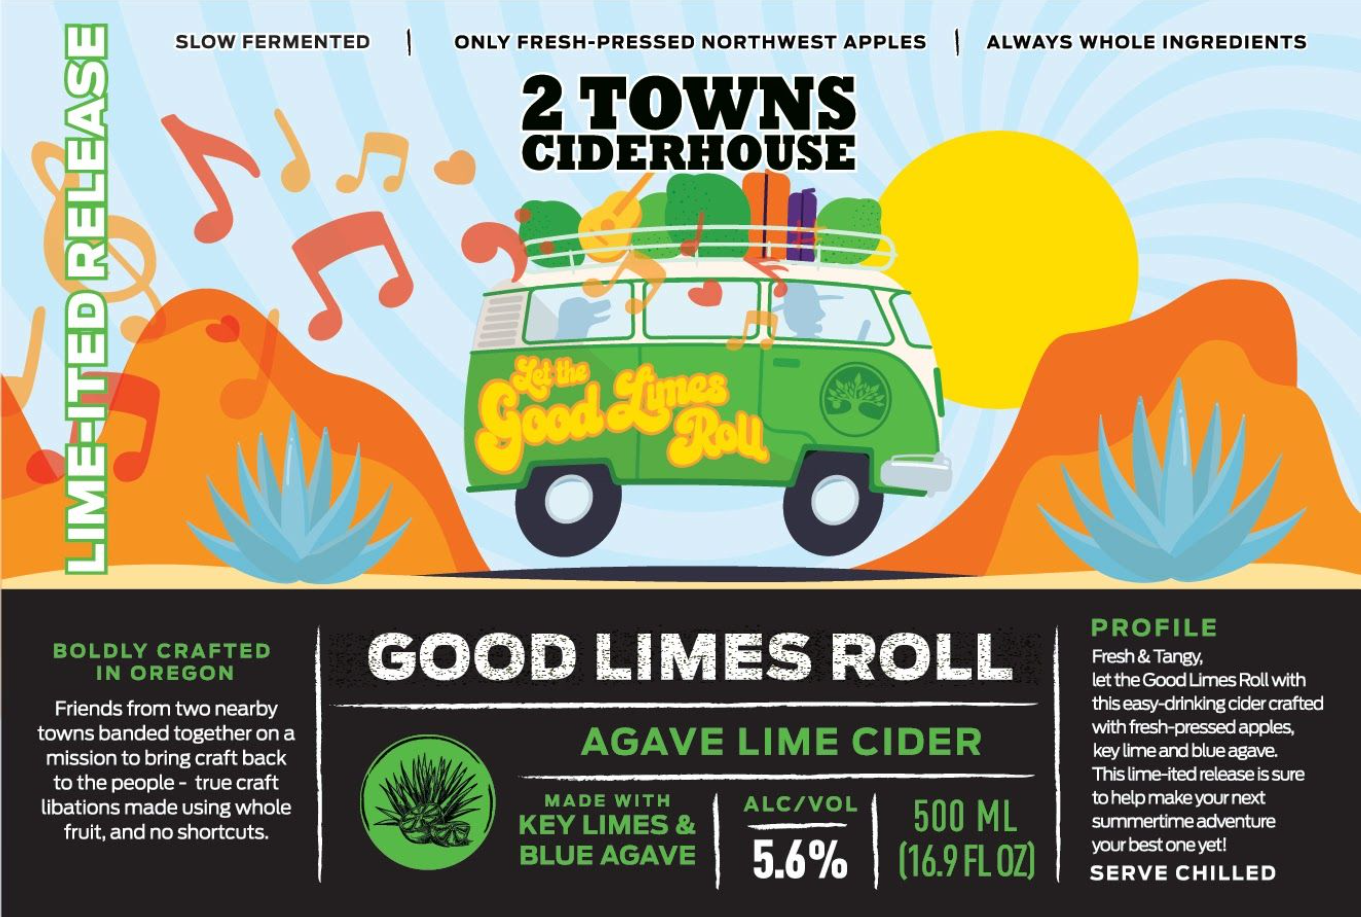 2 Towns Ciderhouse Good Limes Roll Agave Lime Cider Label